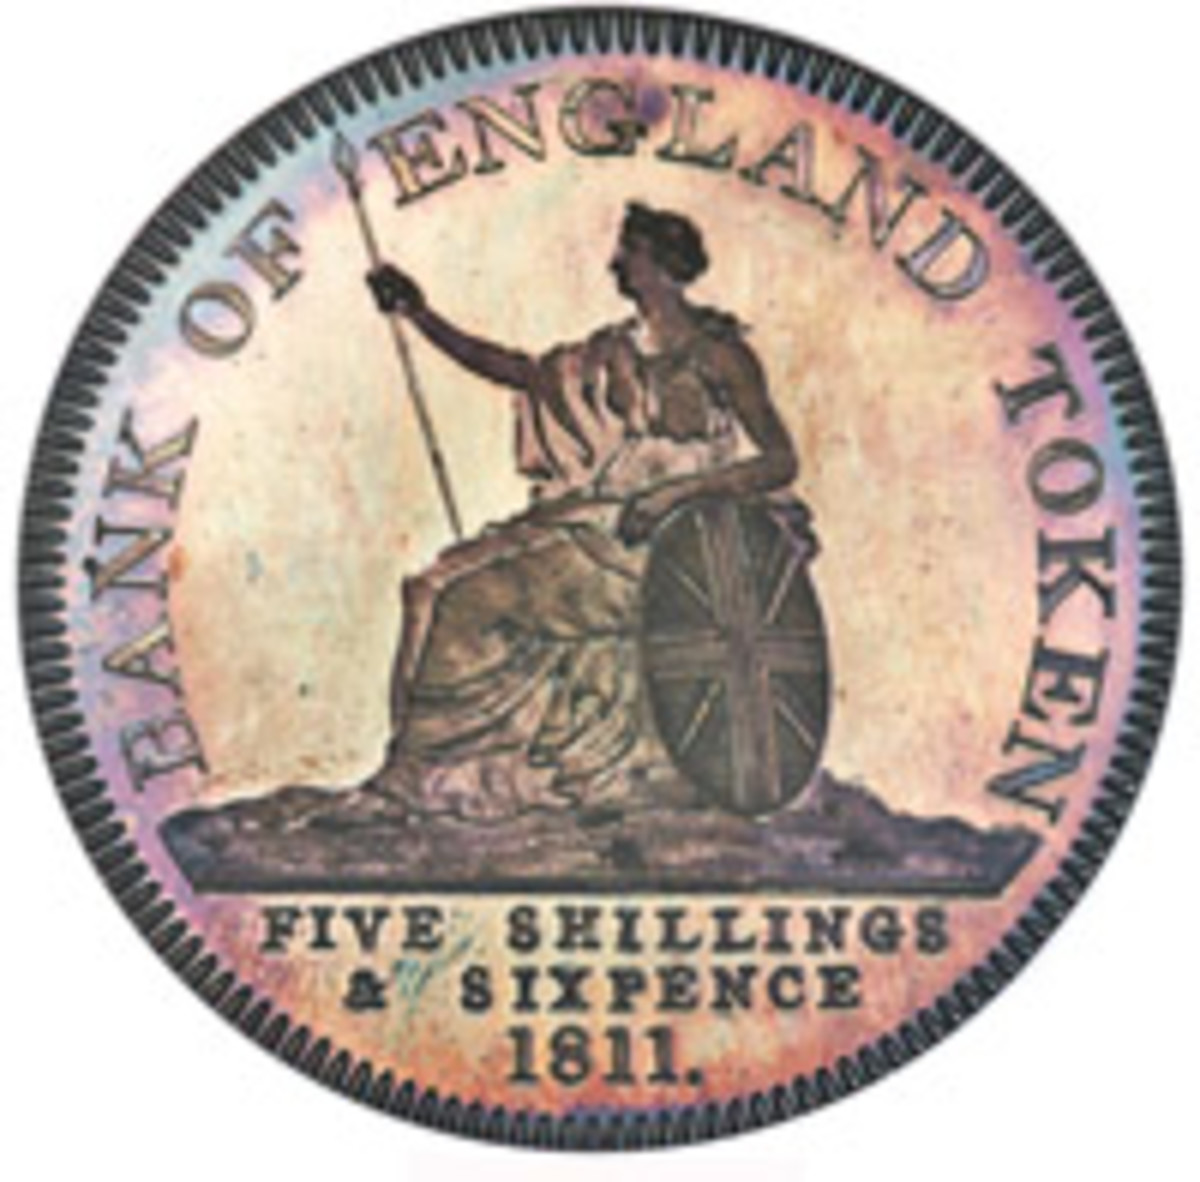 From the Cape Coral Collection of British Crowns: reverse of George III silver proof pattern five shillings and sixpence struck for the Bank of England in 1811 (KM-PnC68) that achieved $168,000 graded NGC PR67+ Cameo NGC. (Image courtesy and © www.ha.com)